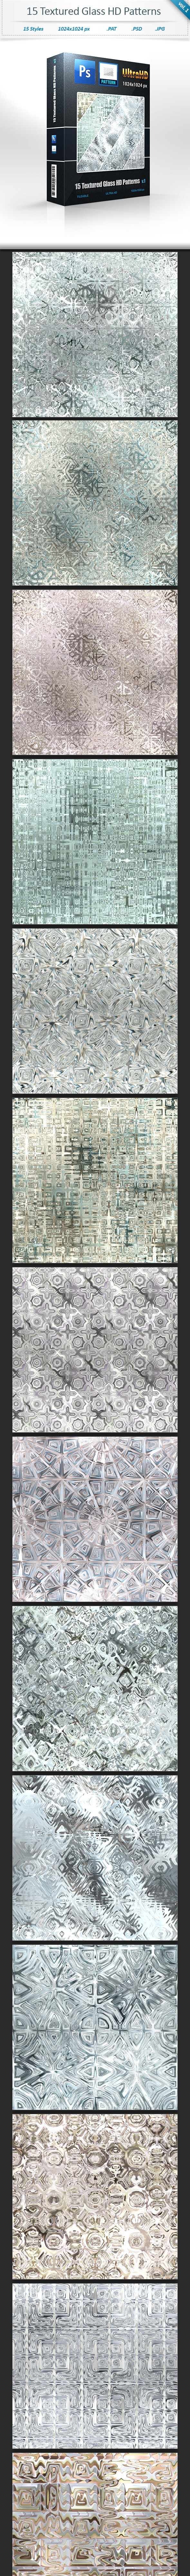 Textured Glass Tileable HD Patterns (vol 1) - Textures / Fills / Patterns Photoshop